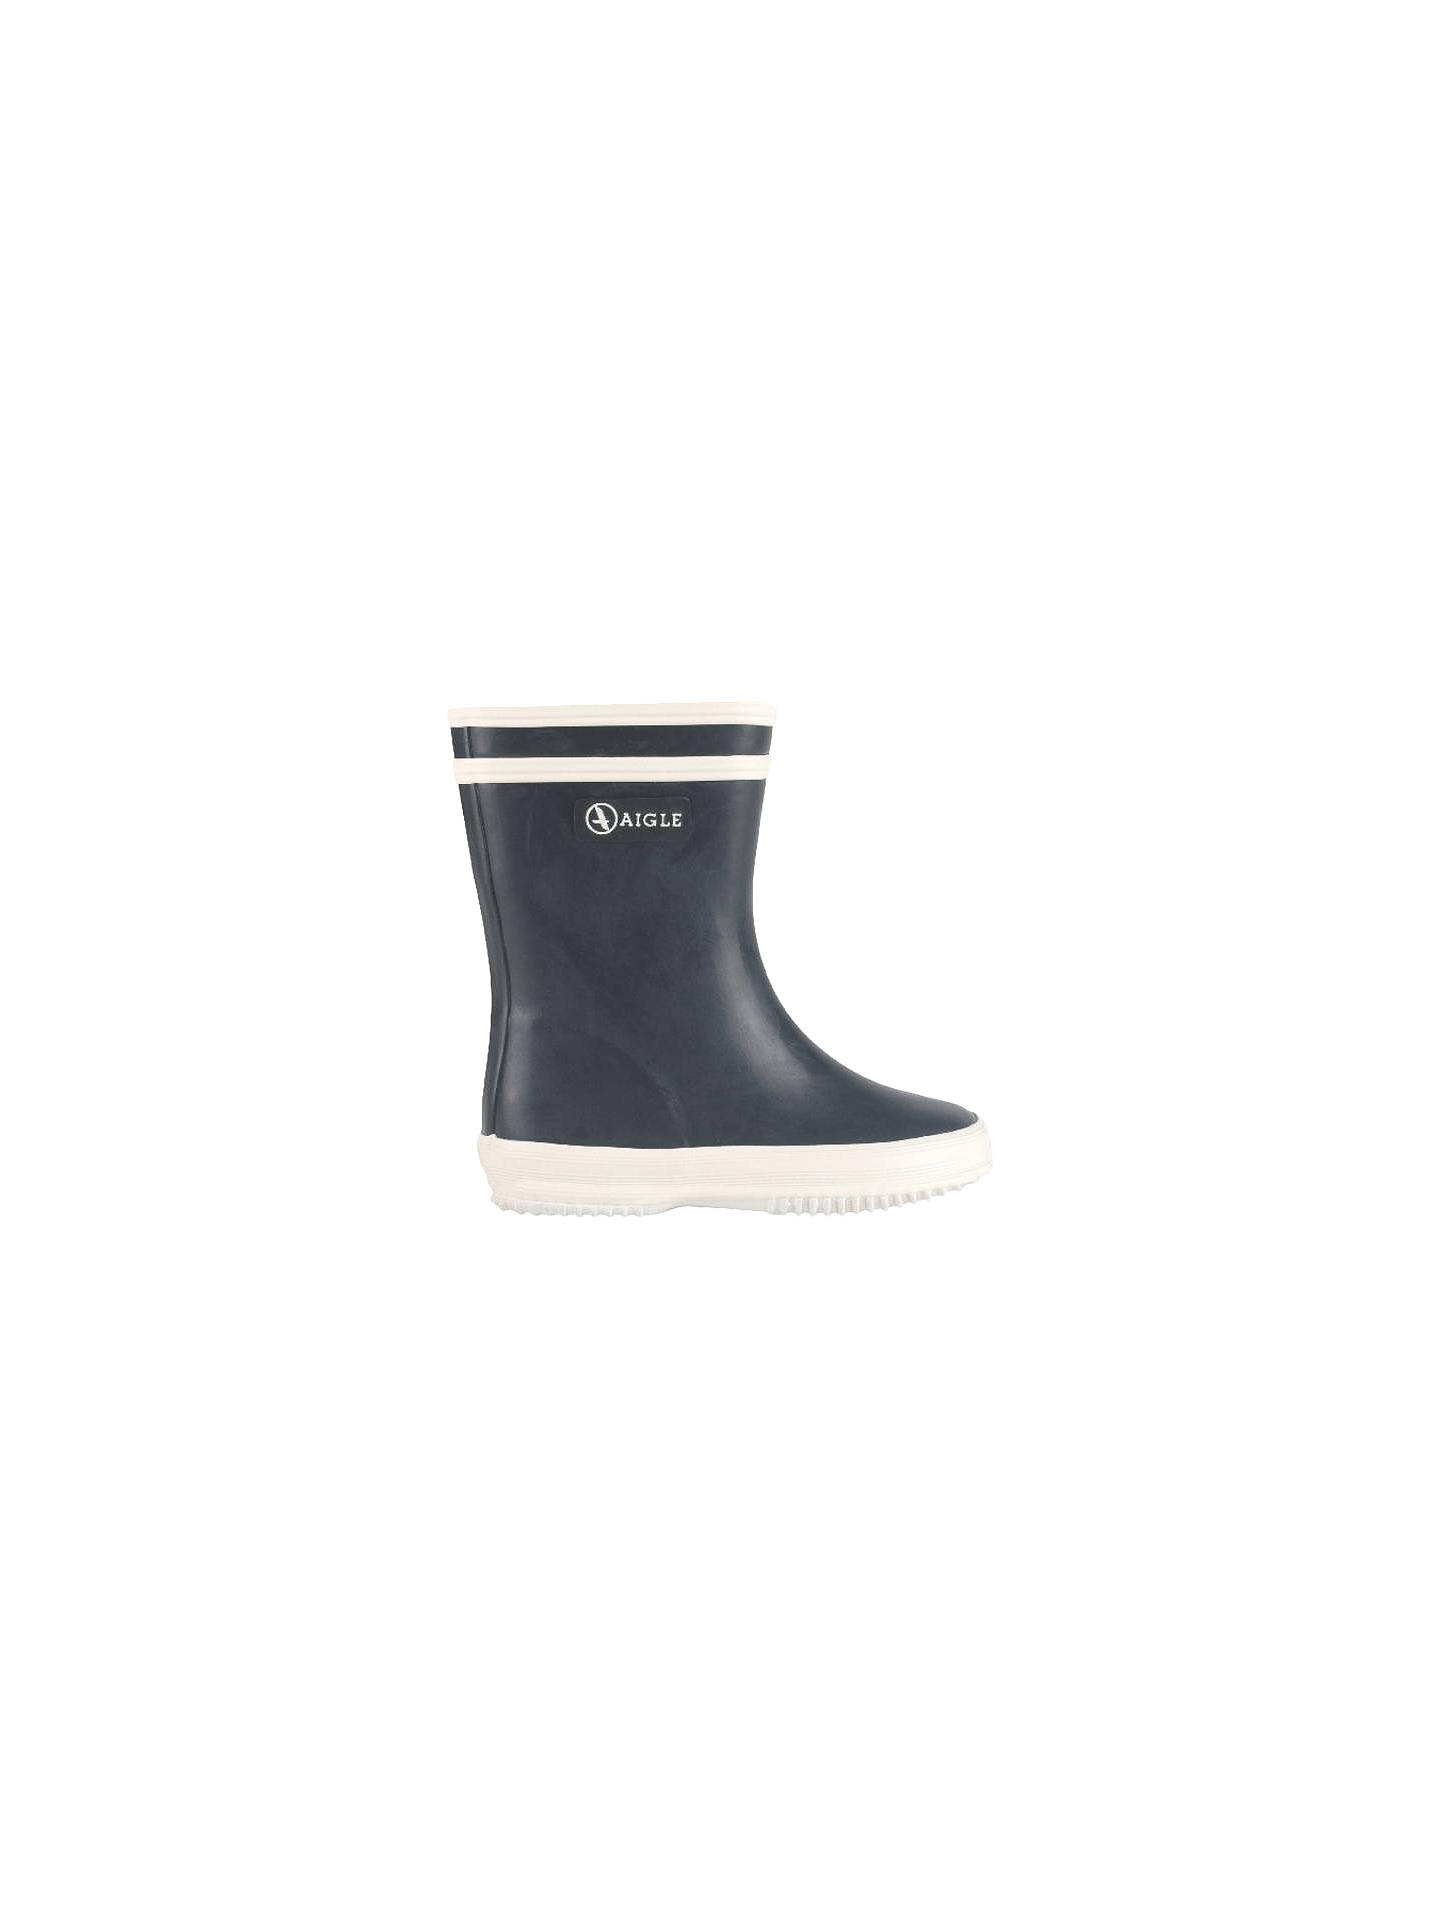 Kinder Aigle Baby Flac Stiefel Silber